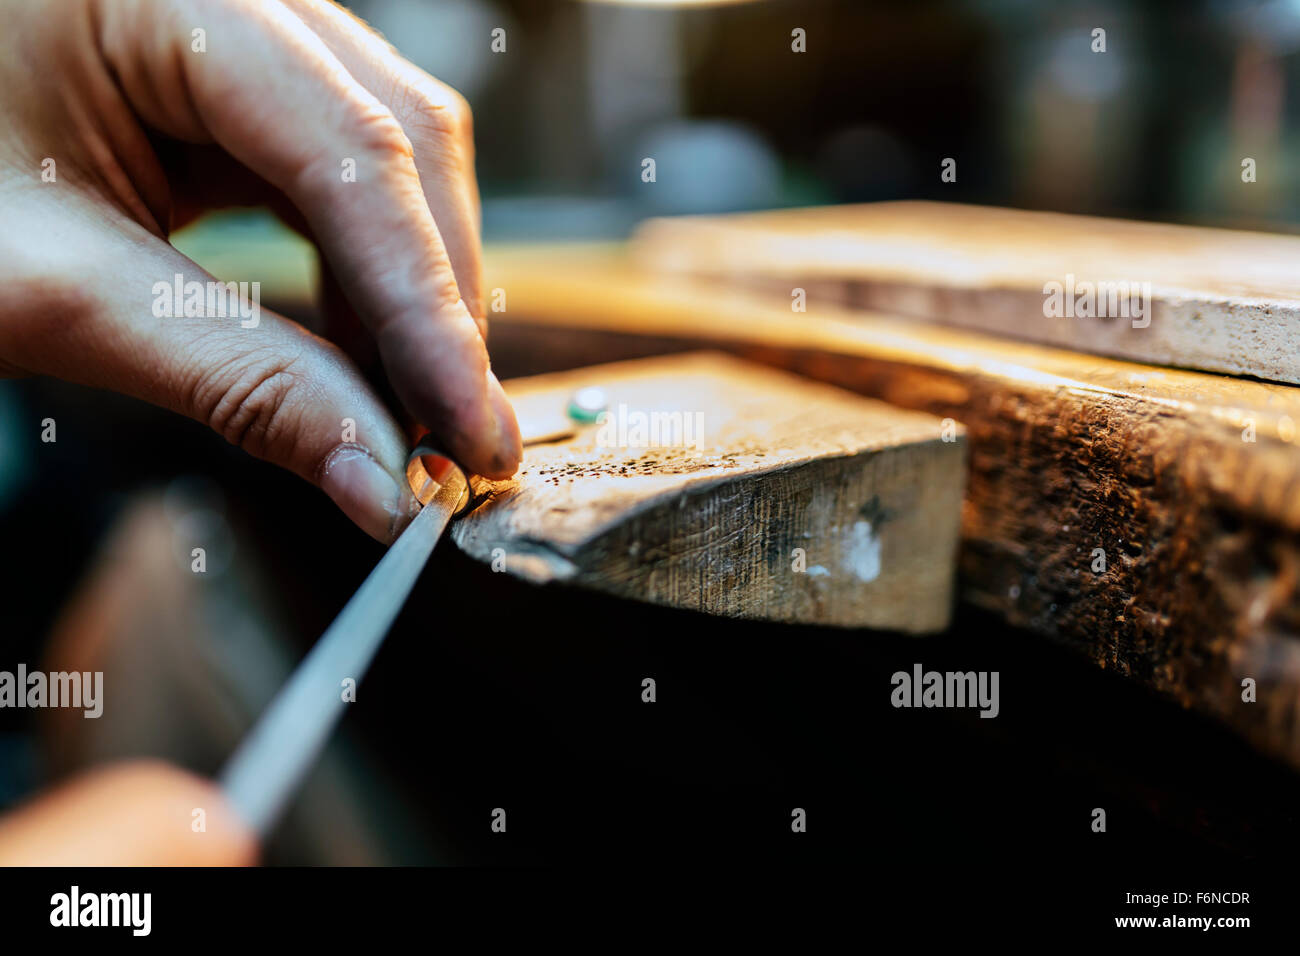 Jeweler working on ring in his workshop Stock Photo: 90210563 - Alamy